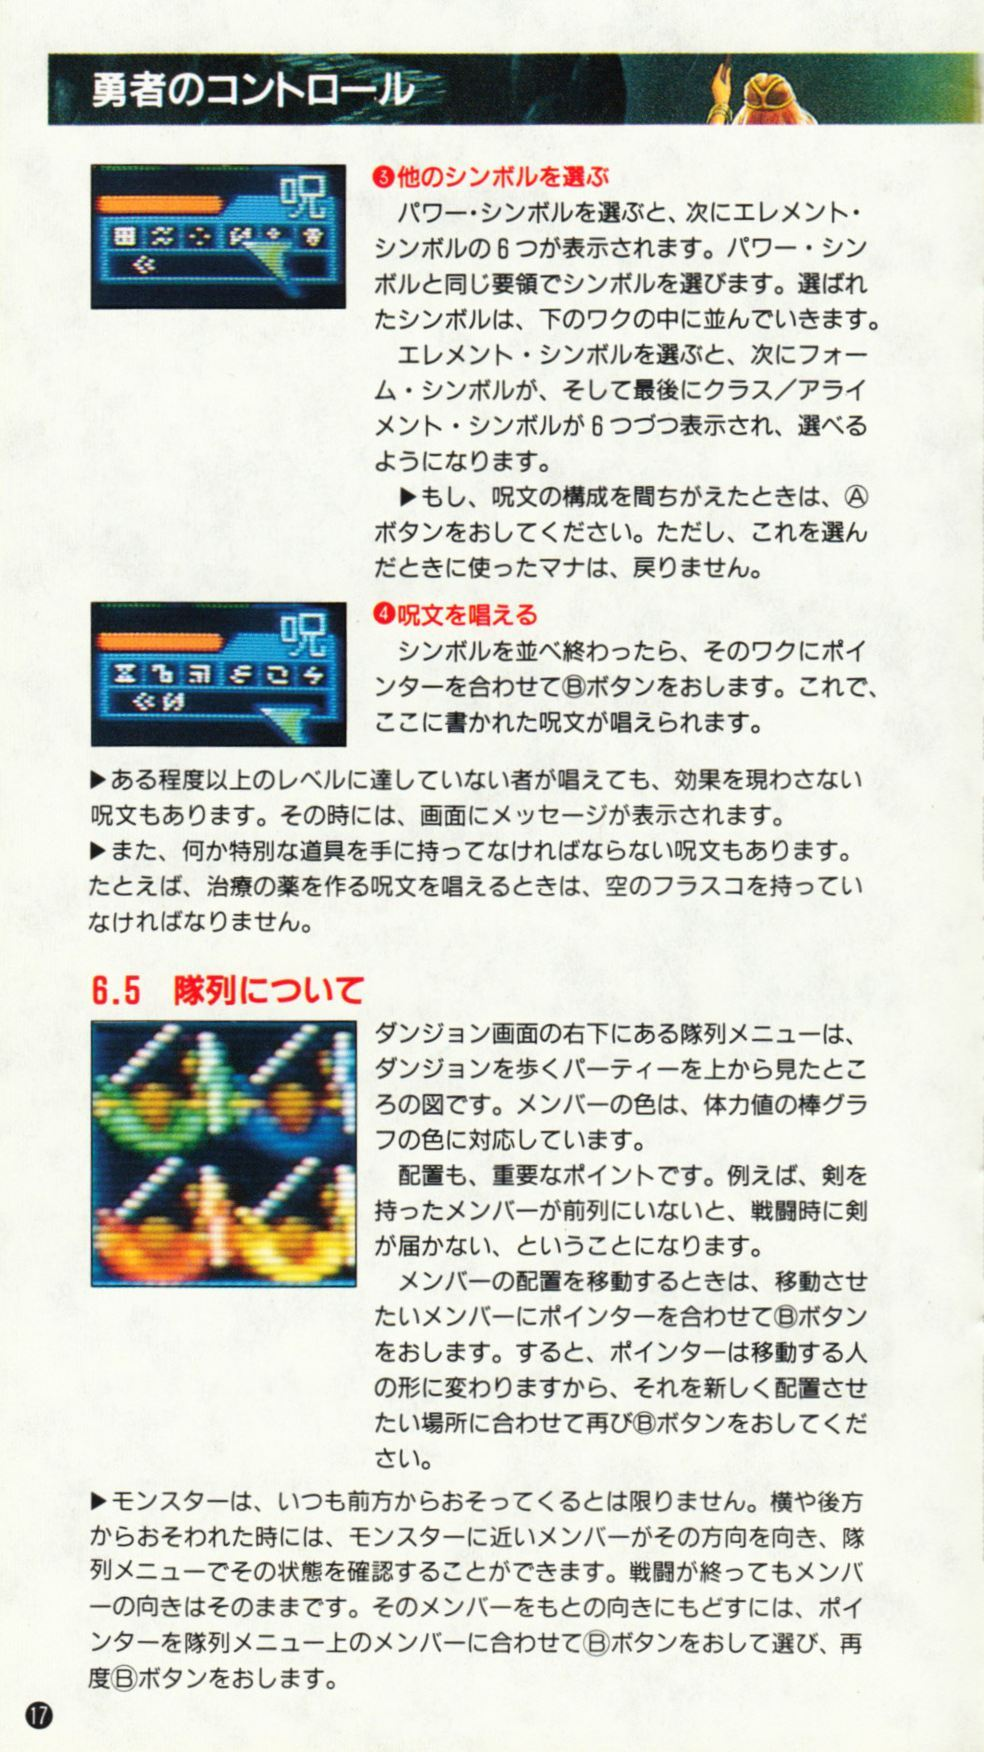 Game - Dungeon Master - JP - Super Famicom - Manual - Page 020 - Scan